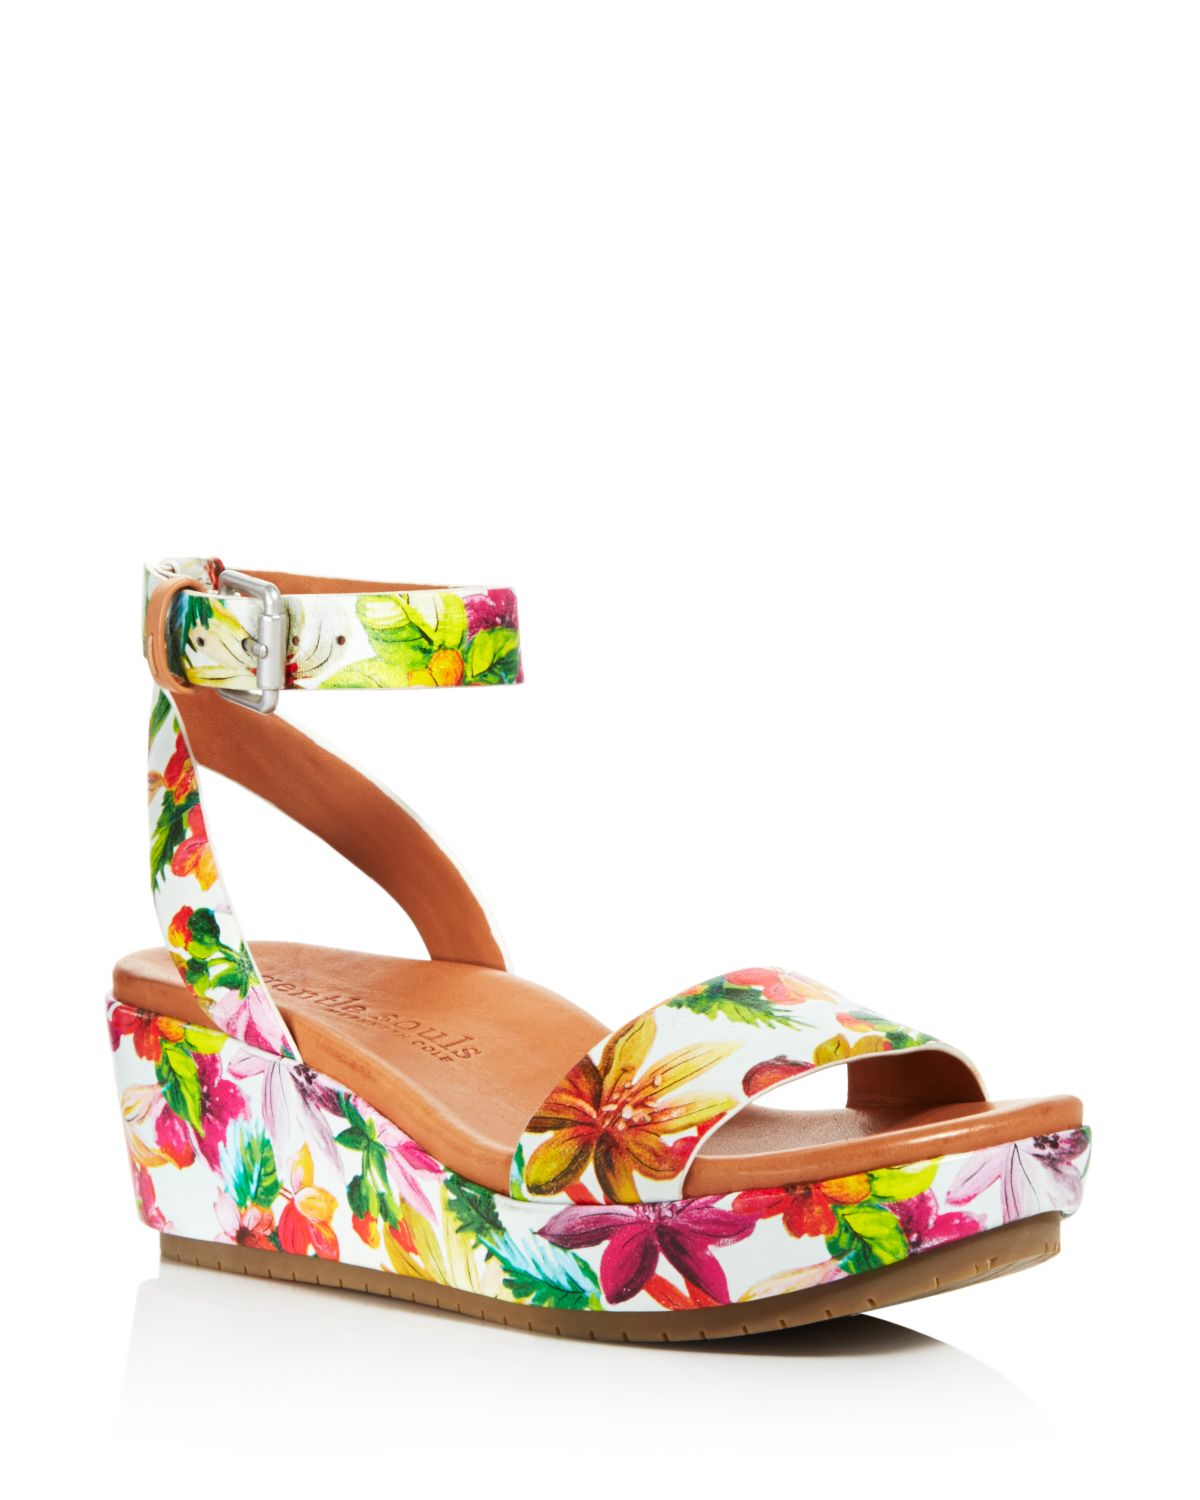 Kenneth Cole Gentle Souls Women's Morrie Printed Leather Platform Wedge Sandals